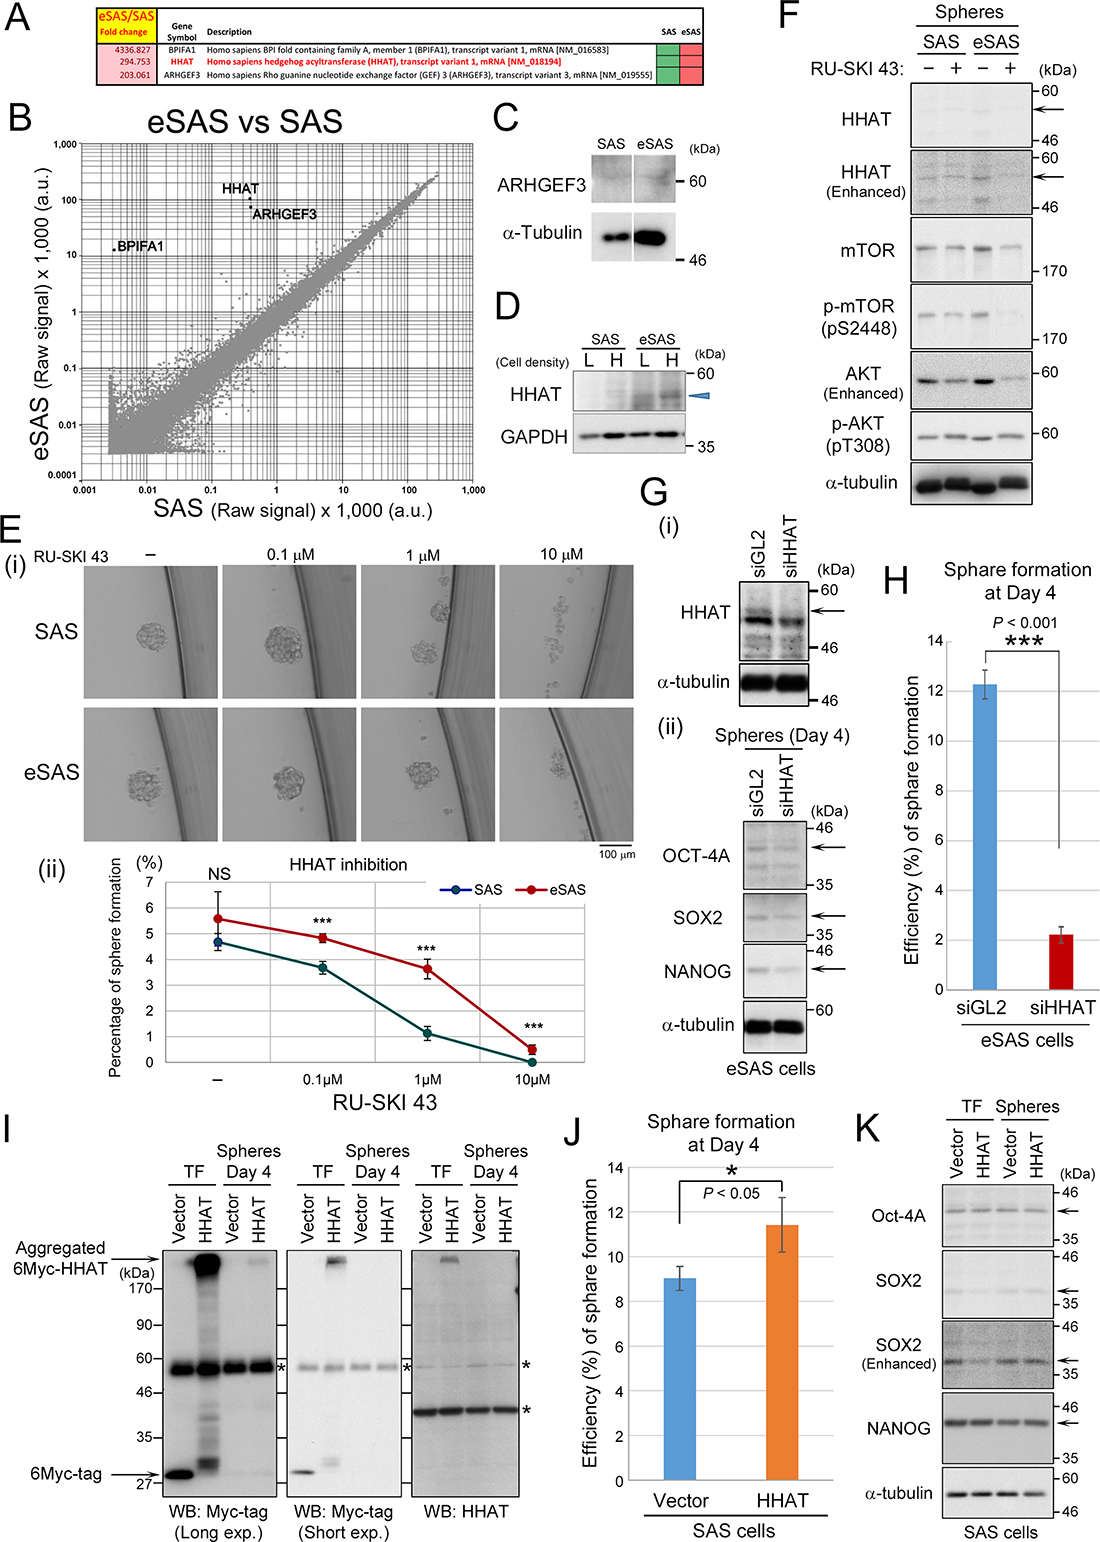 Genome-wide cDNA microarray and Wb analyses of HHAT expression in eSAS cells.